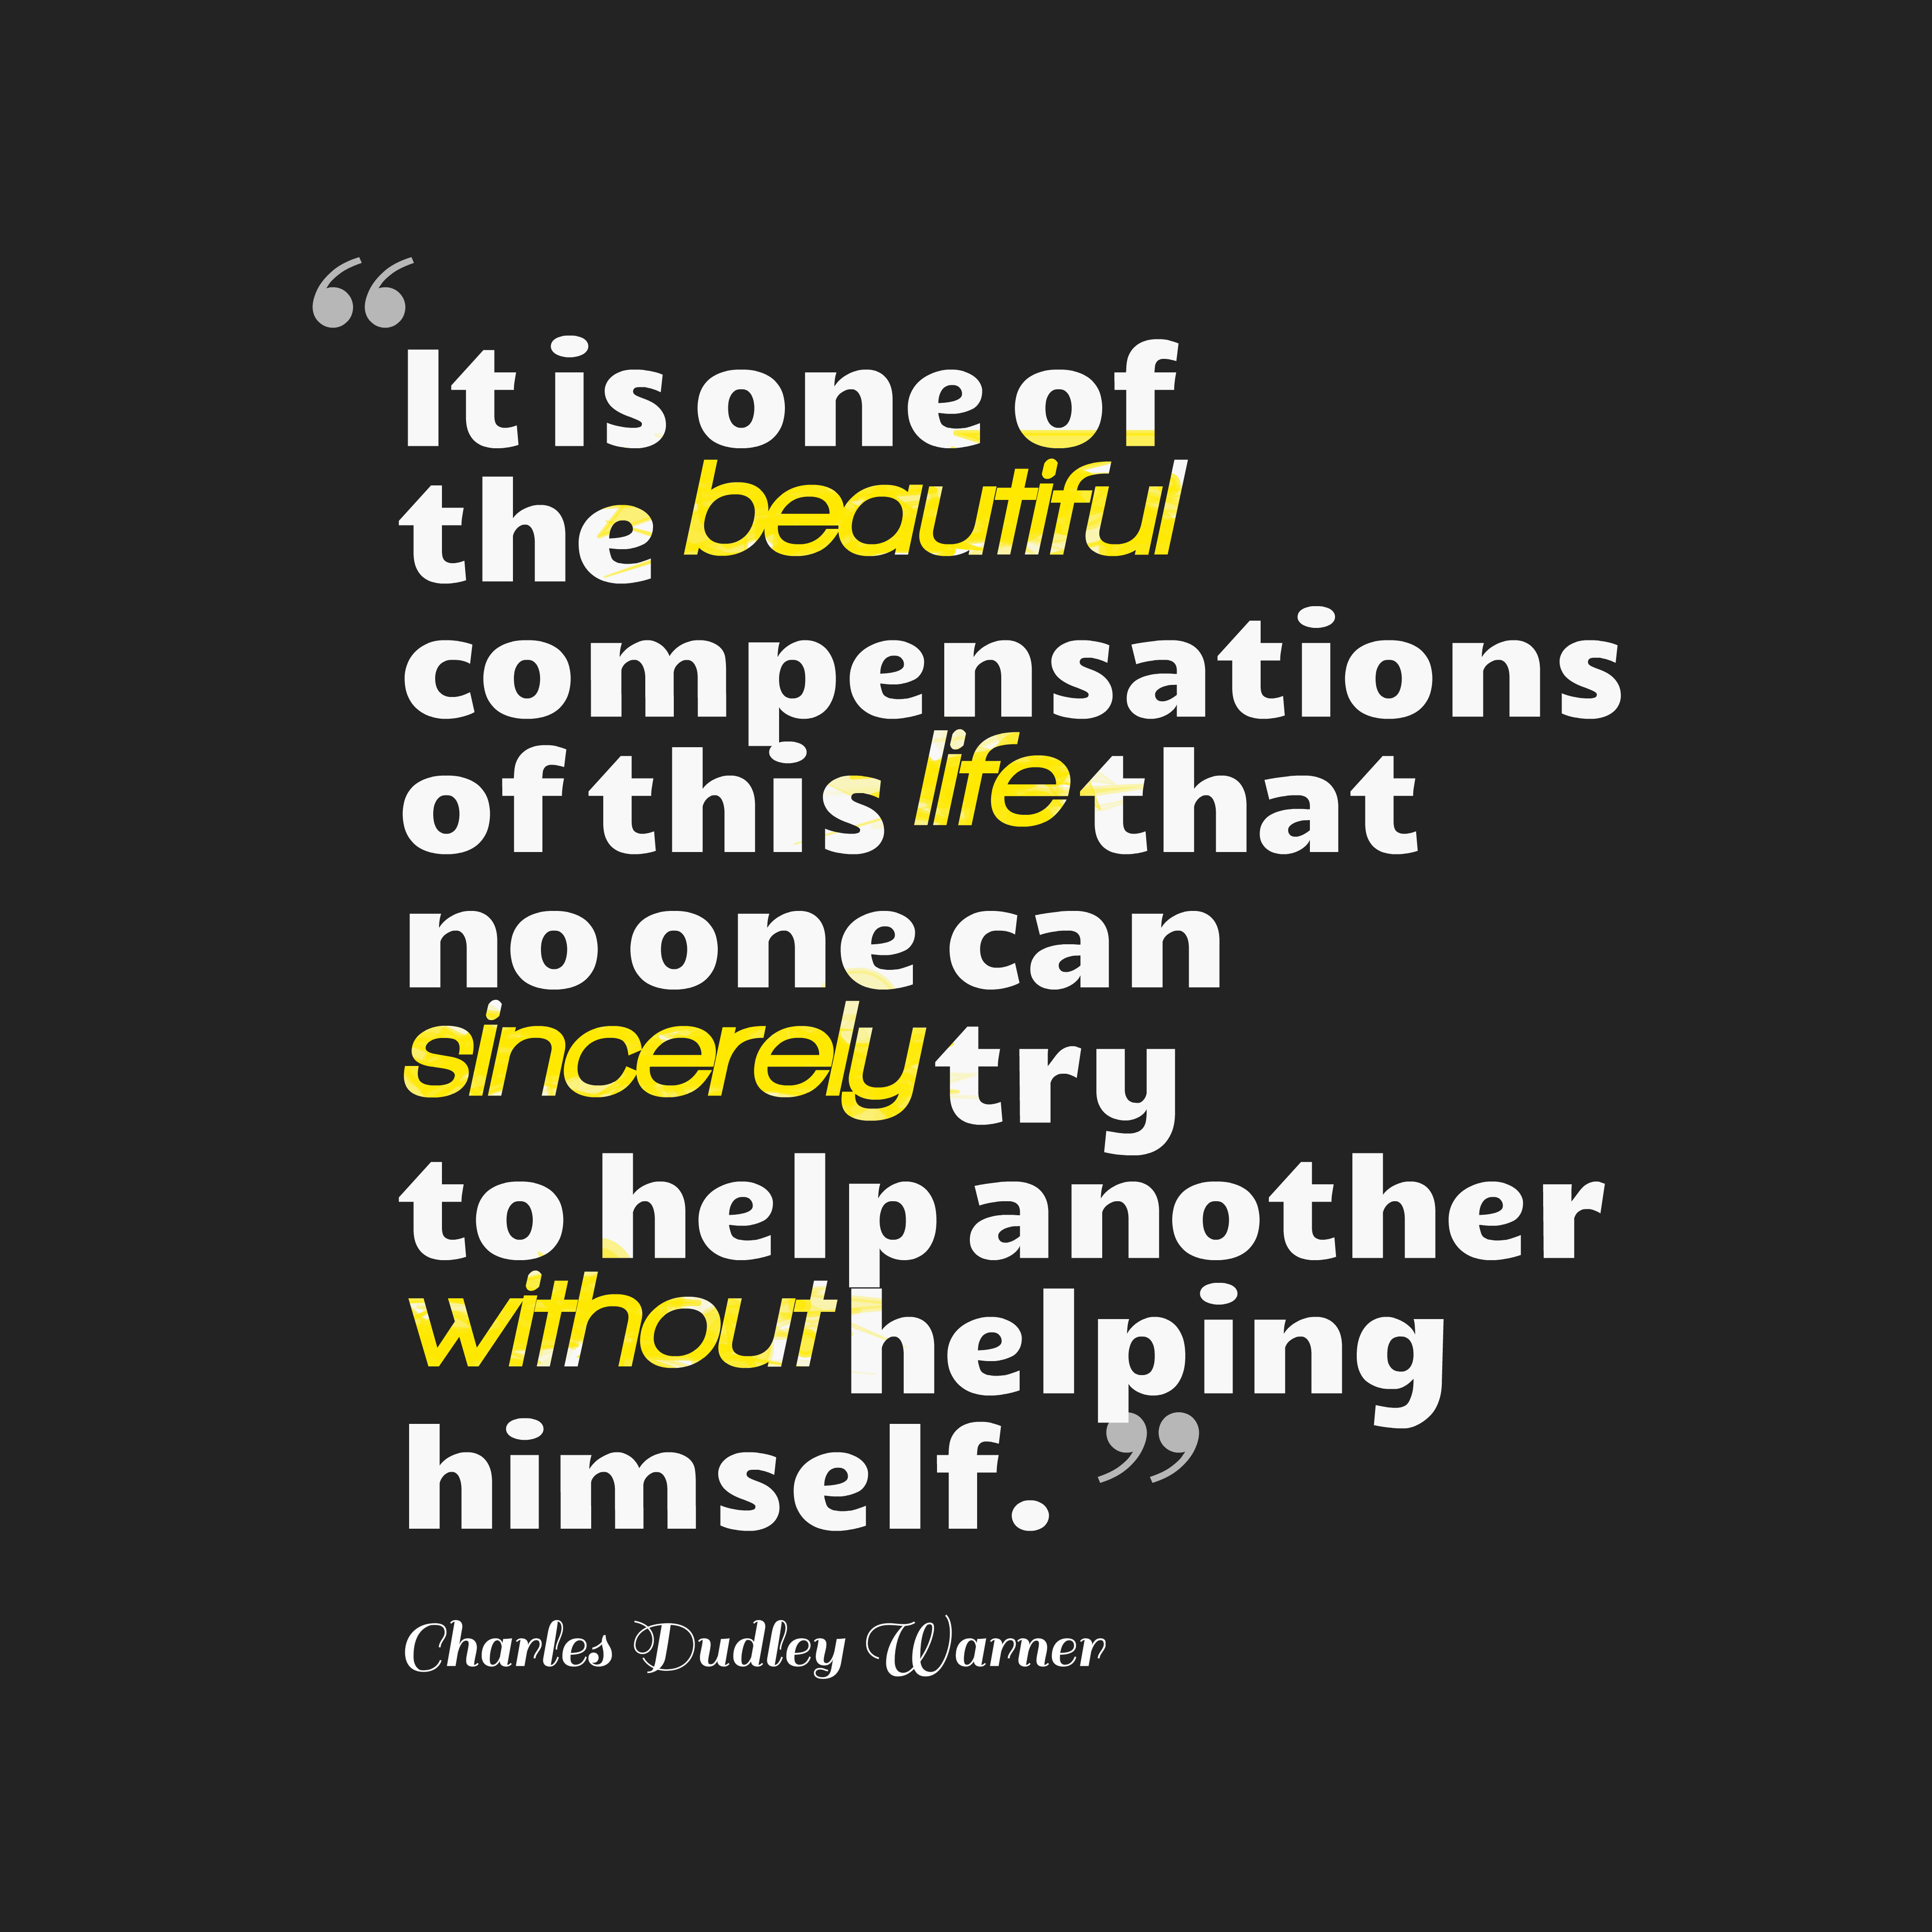 Quotes image of It is one of the beautiful compensations of this life that no one can sincerely try to help another without helping himself.